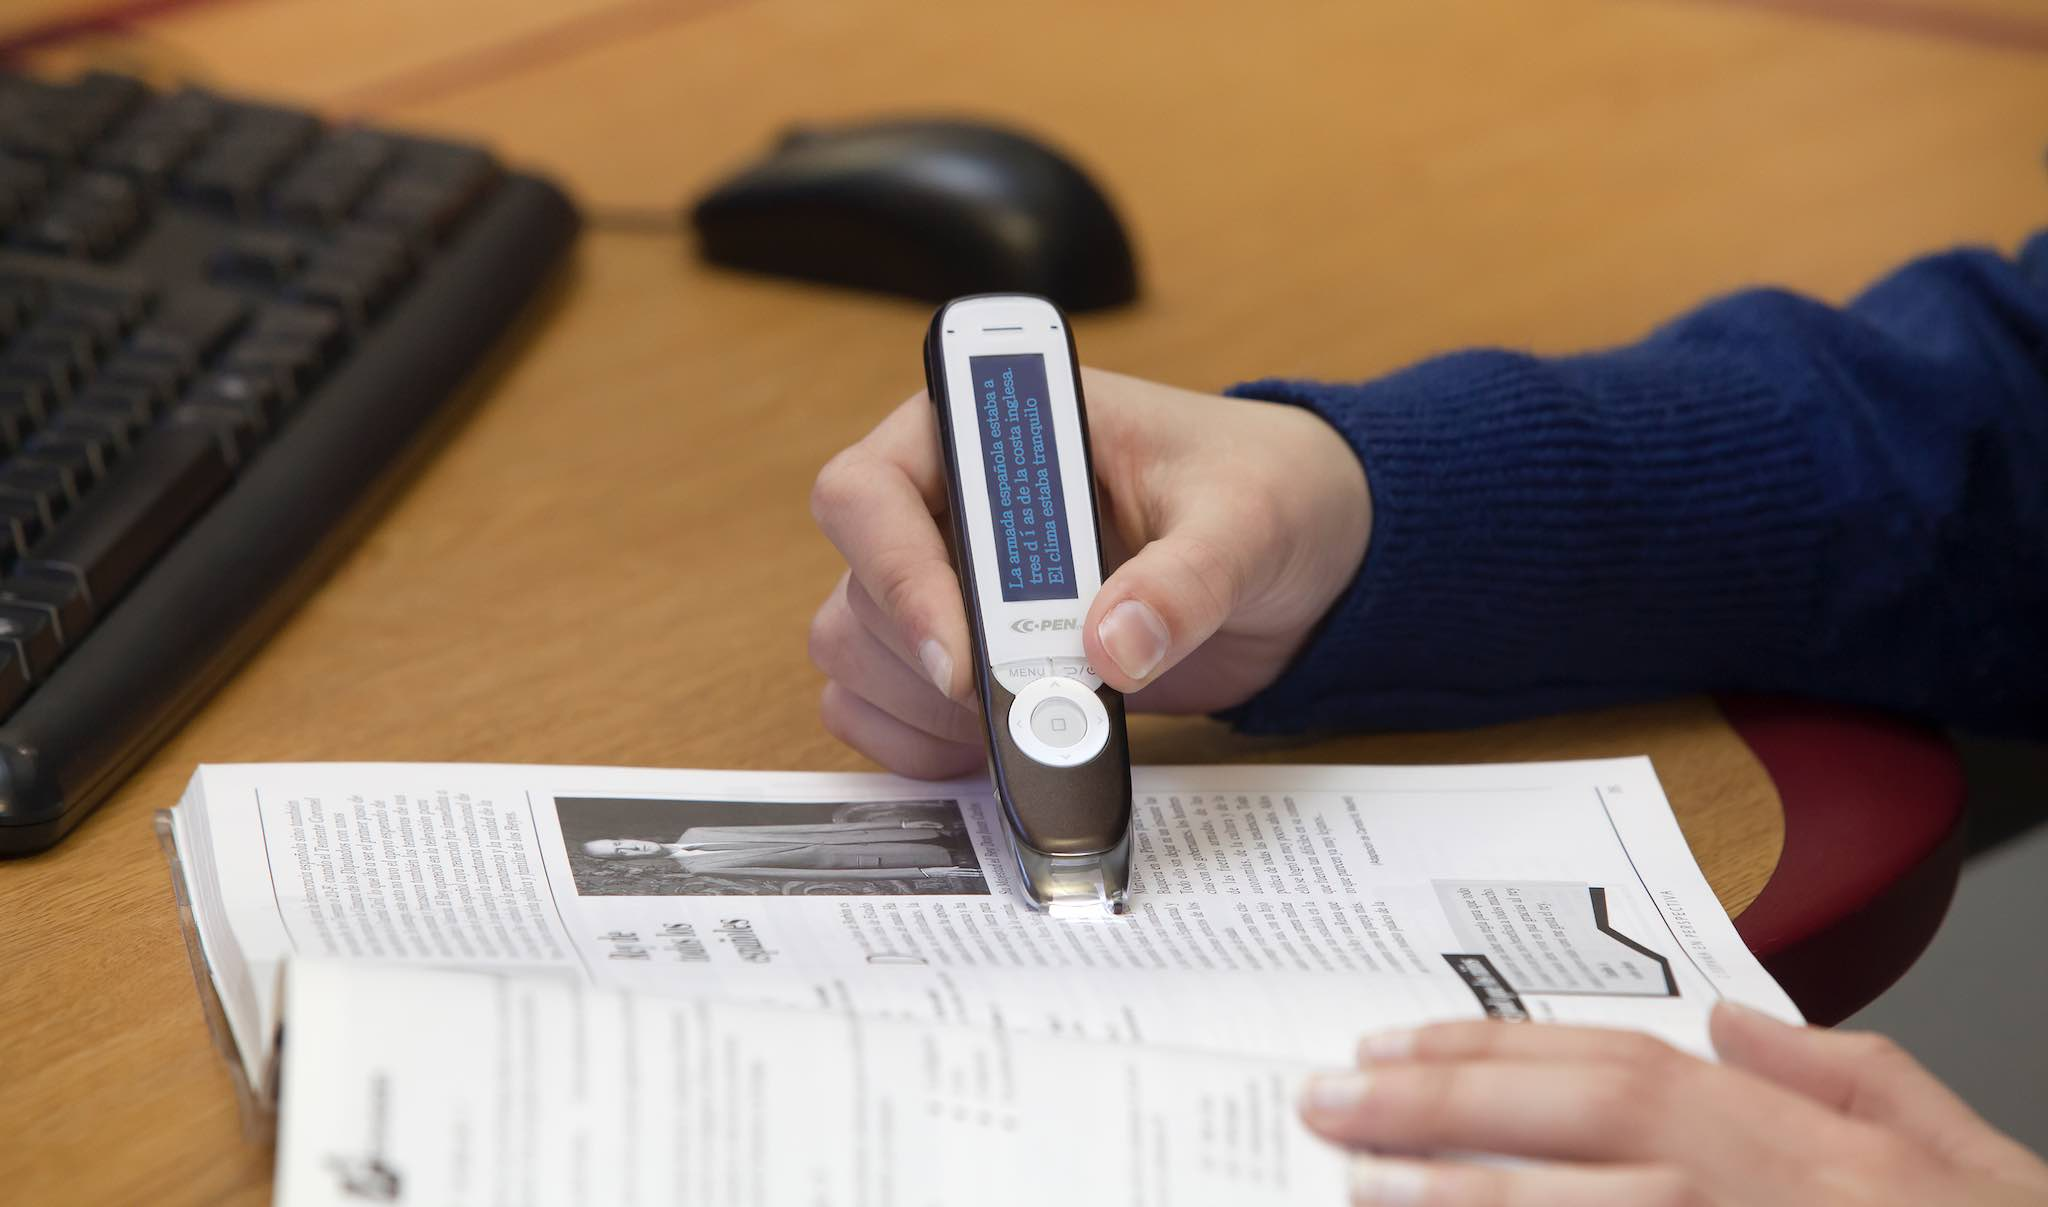 C-PEN Dictionary Mobile Scanning Pen Translator